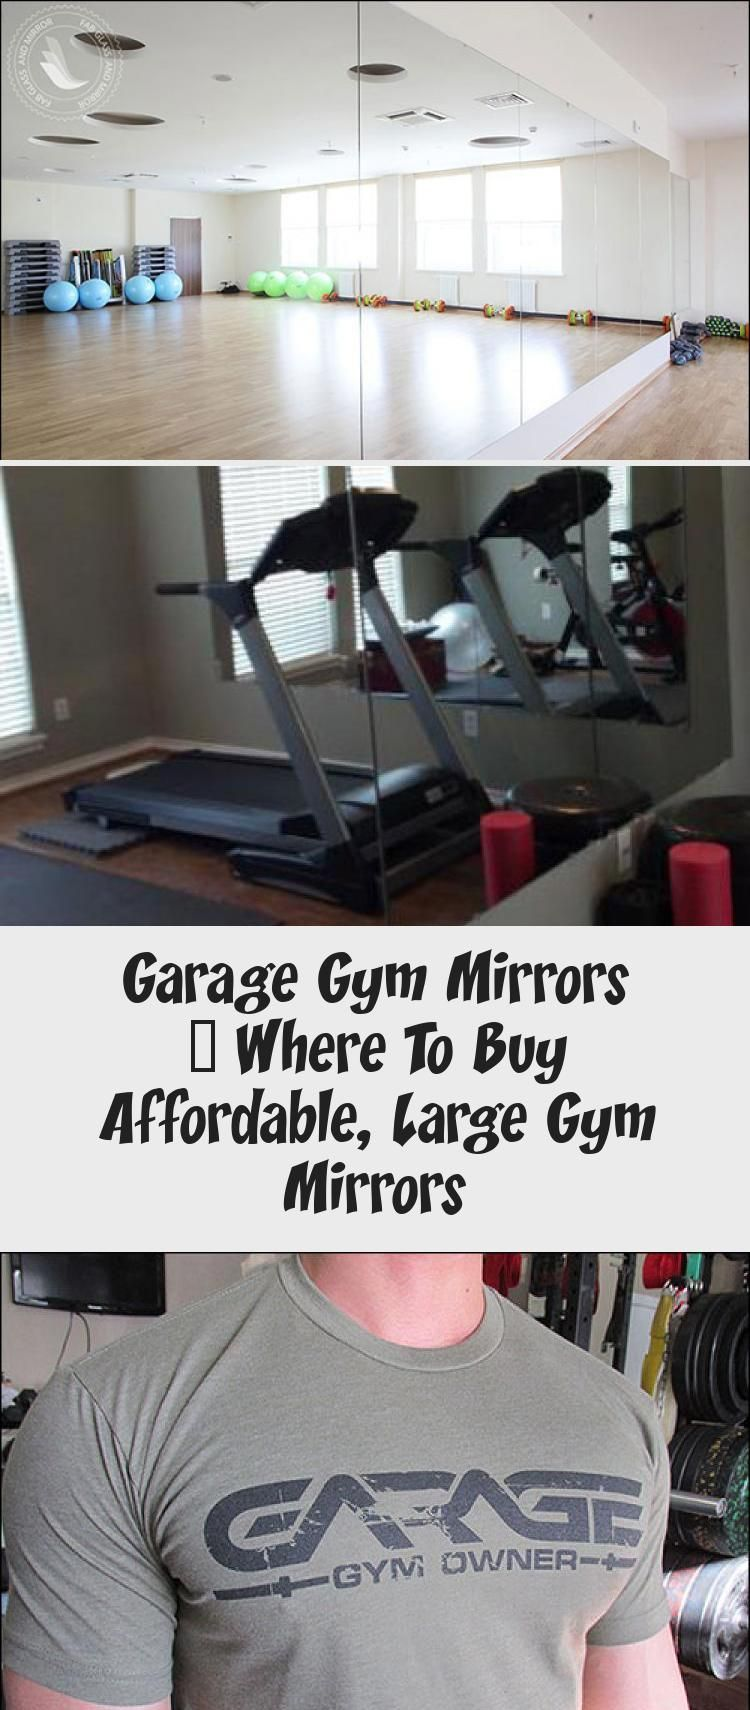 Fab Glass And Mirror Activity Mirrors For Gyms And Studios Homegymwall Homegympaintcolors Homegyminspiration Ho In 2020 Gym Mirrors Garage Gym Large Framed Mirrors